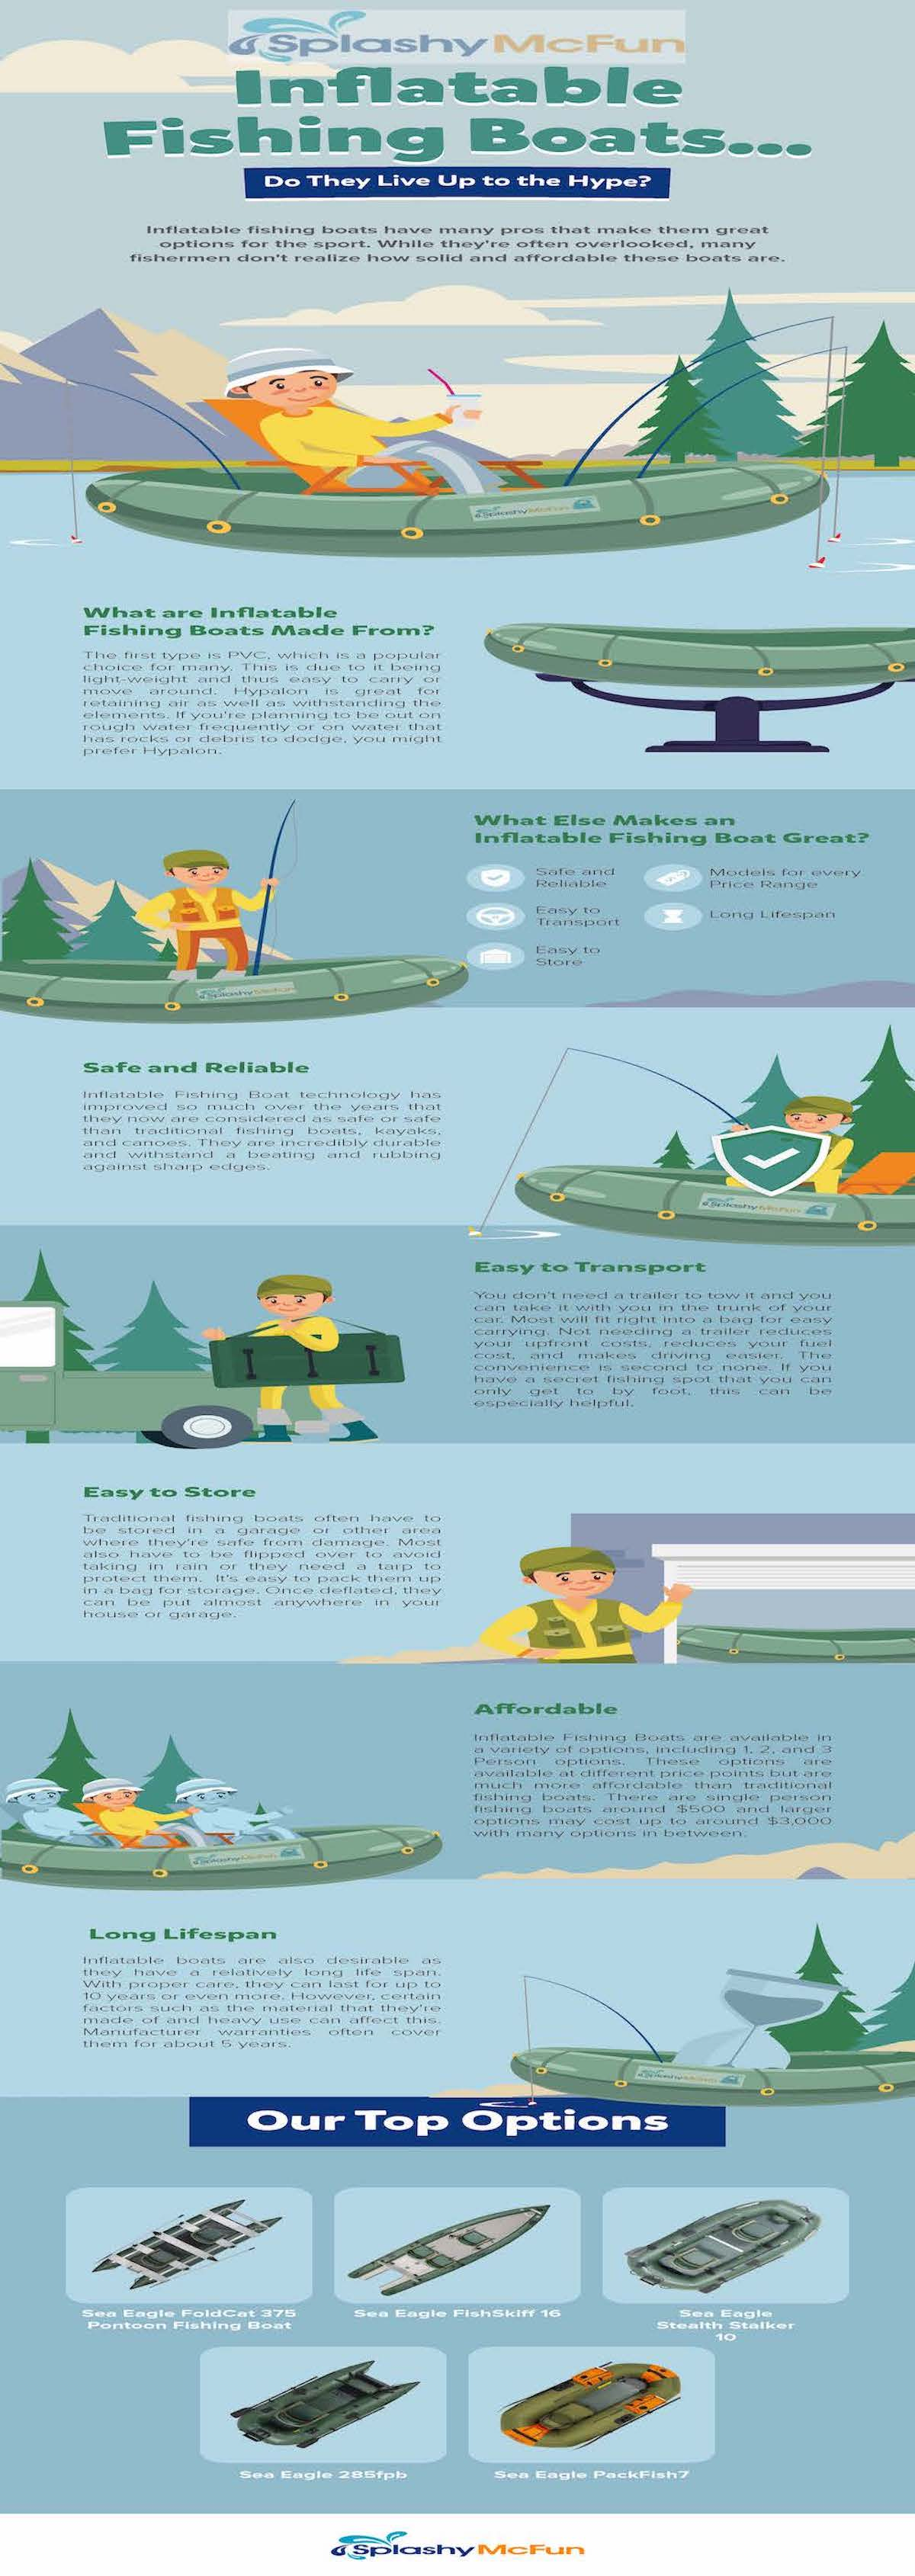 Inflatable Fishing Boat for Sale Information Graphic